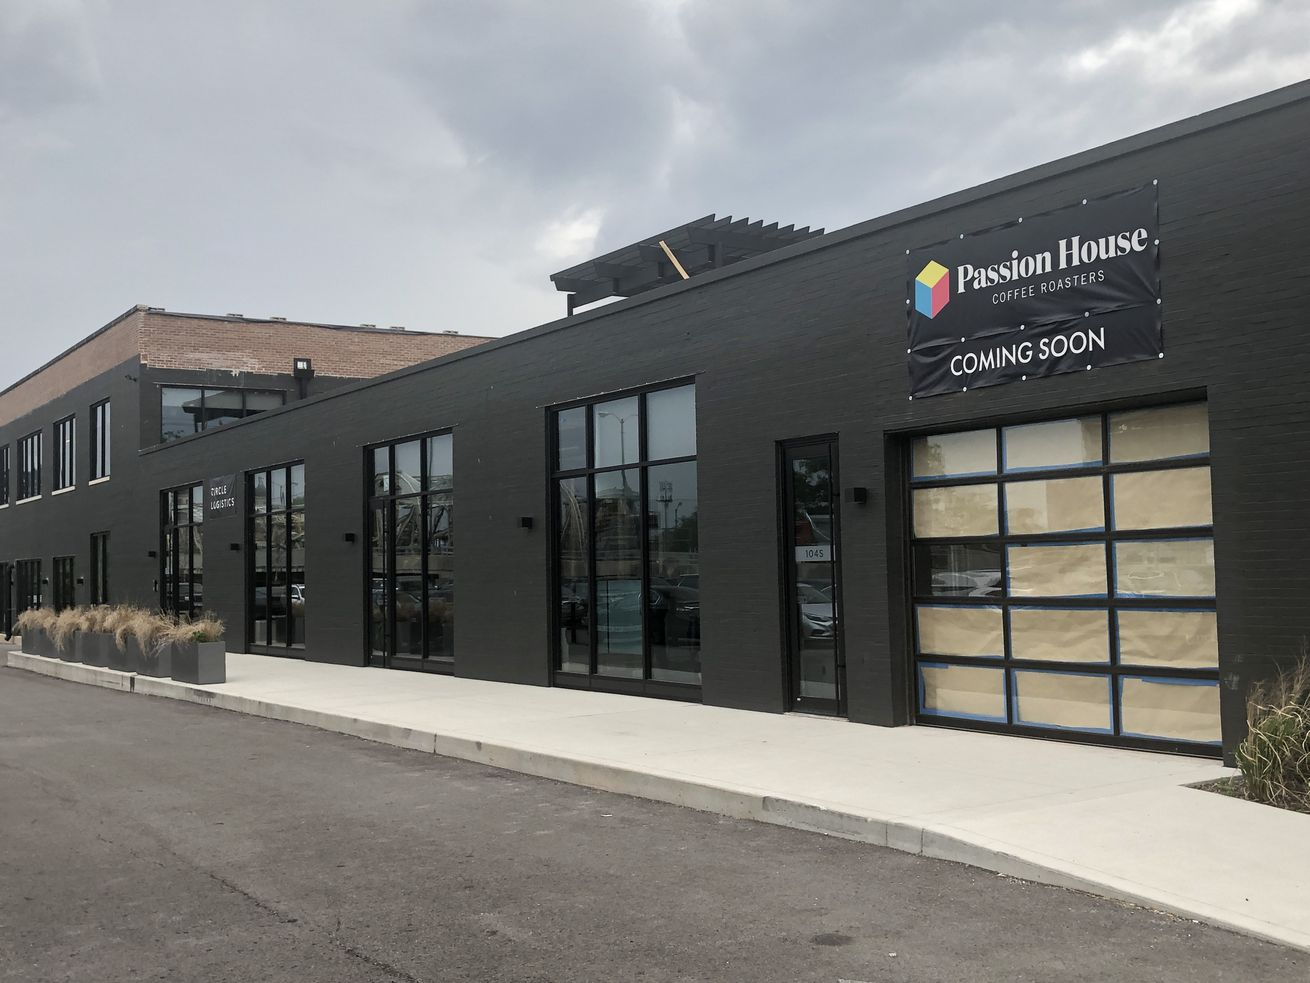 The future home of Passion House's Goose Island cafe.